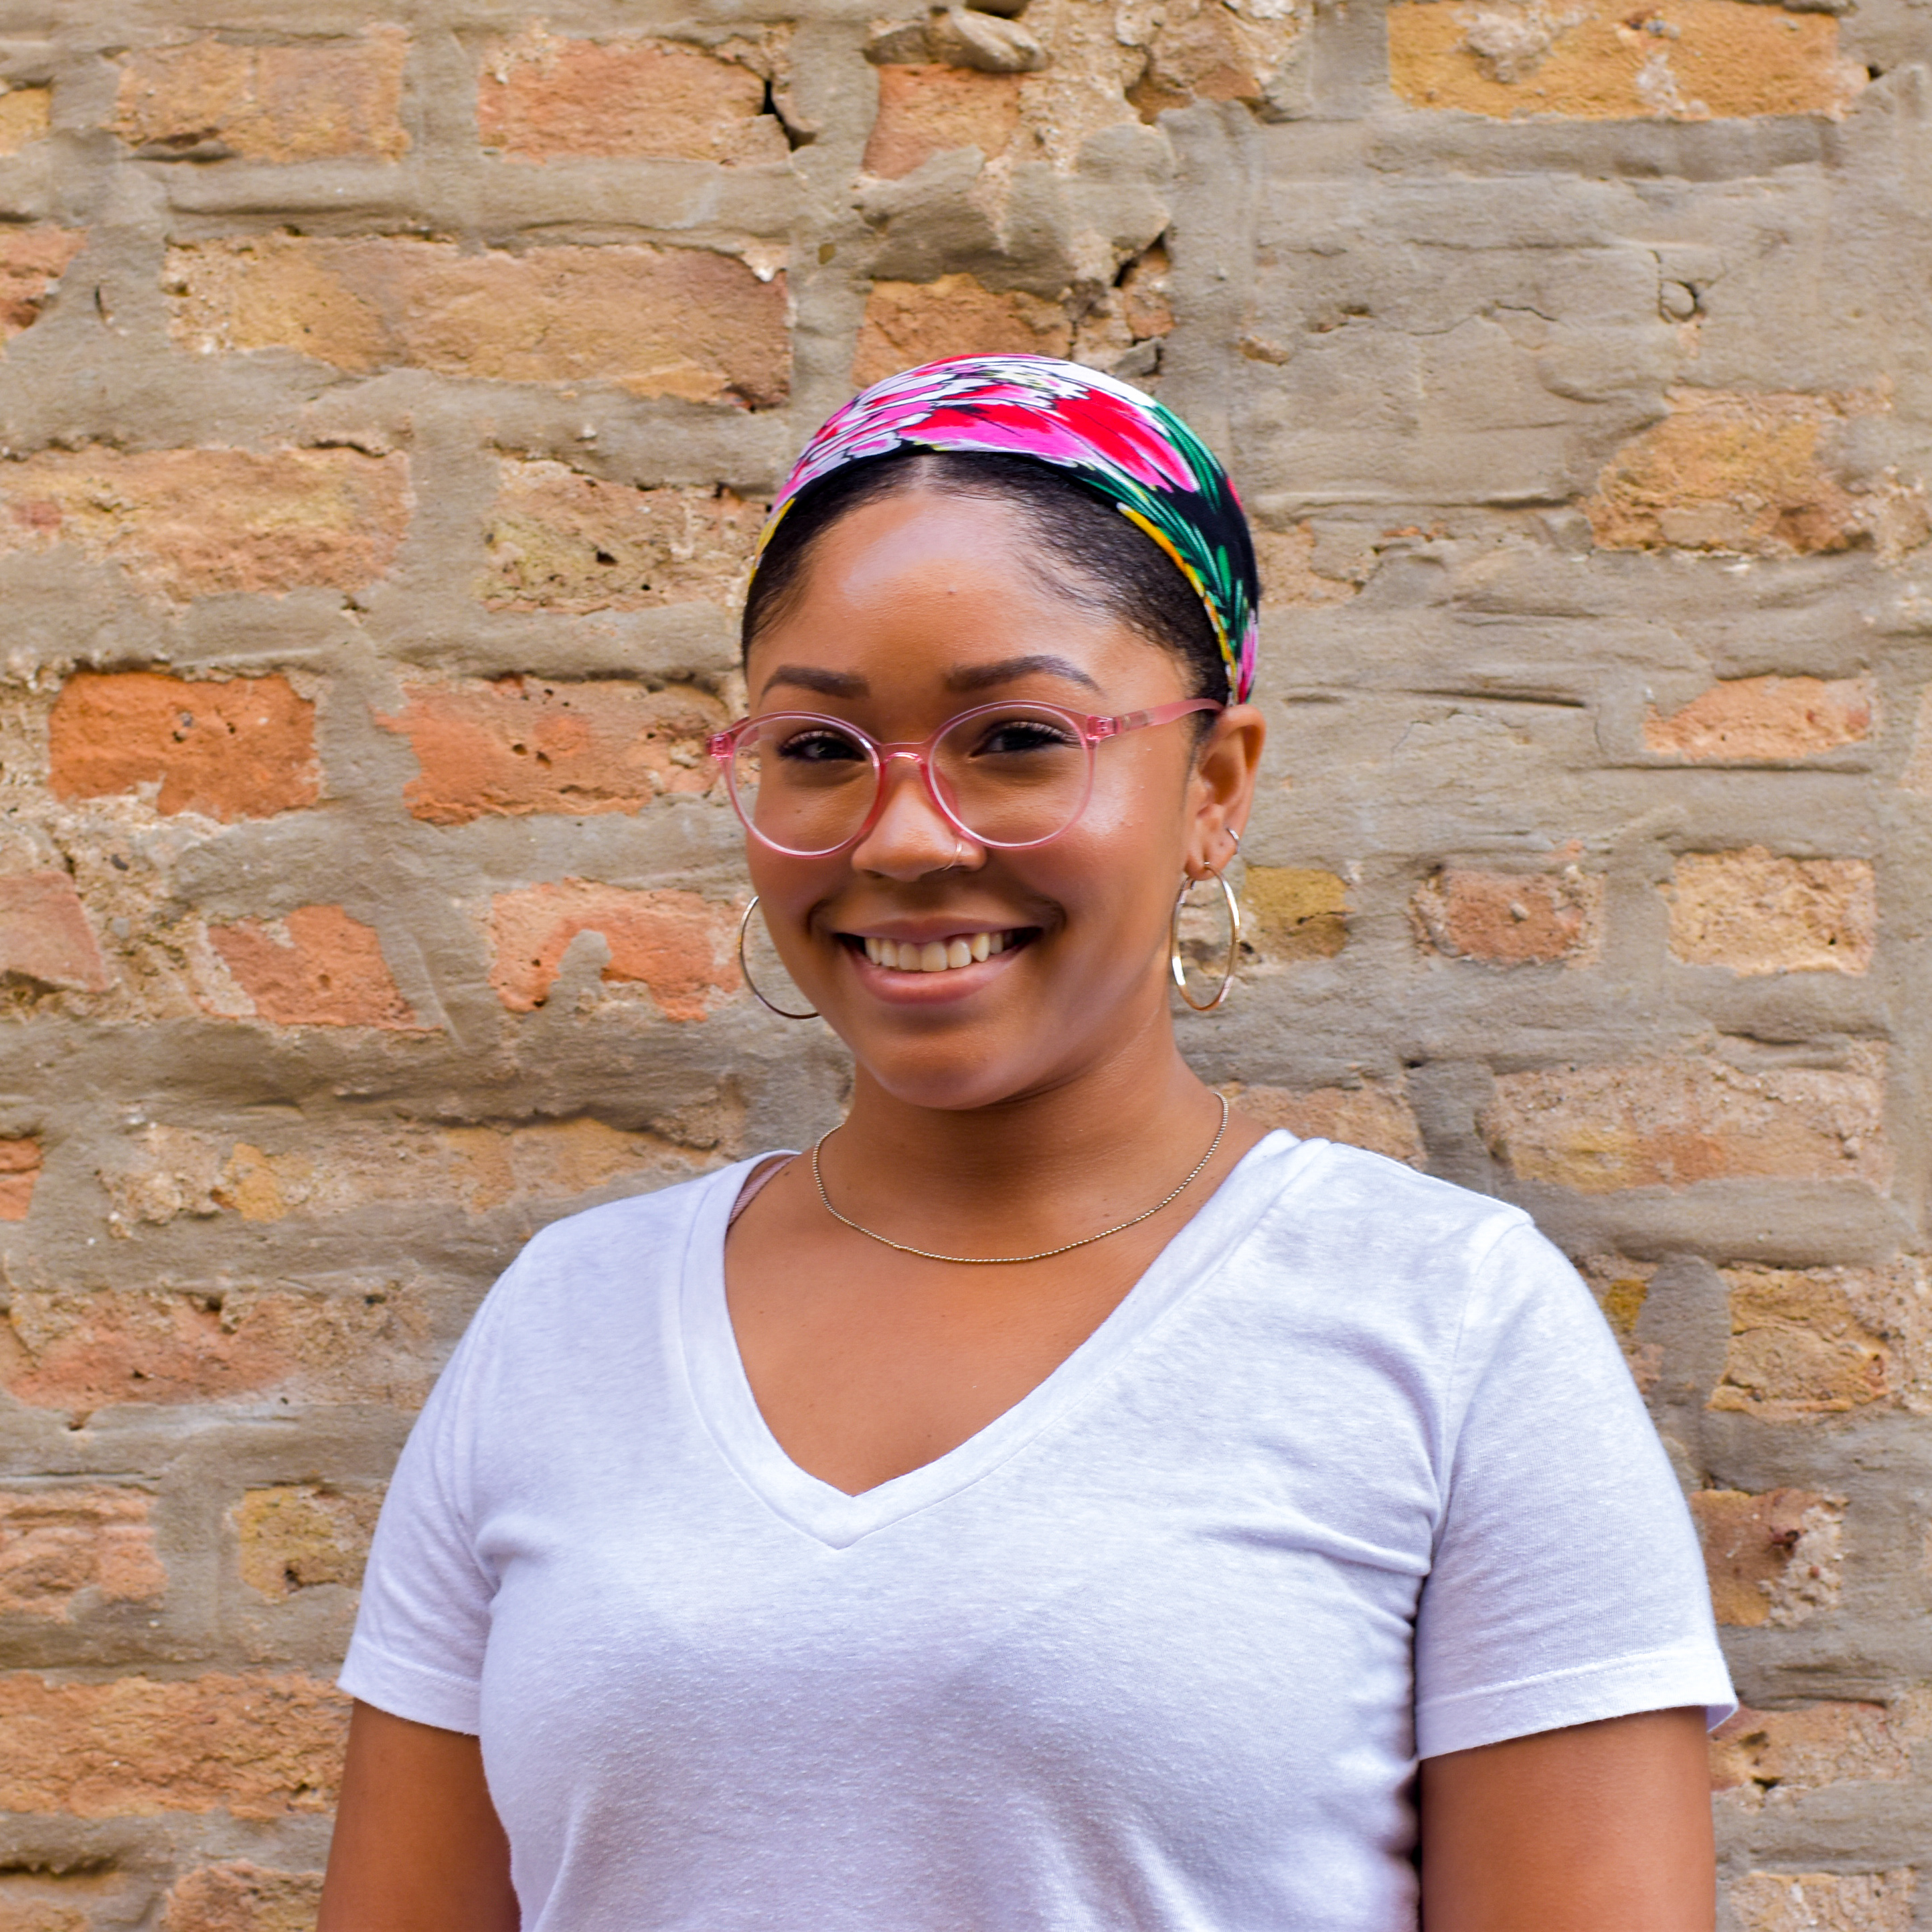 Portrait of Chinyere, smiling in front of a brick wall